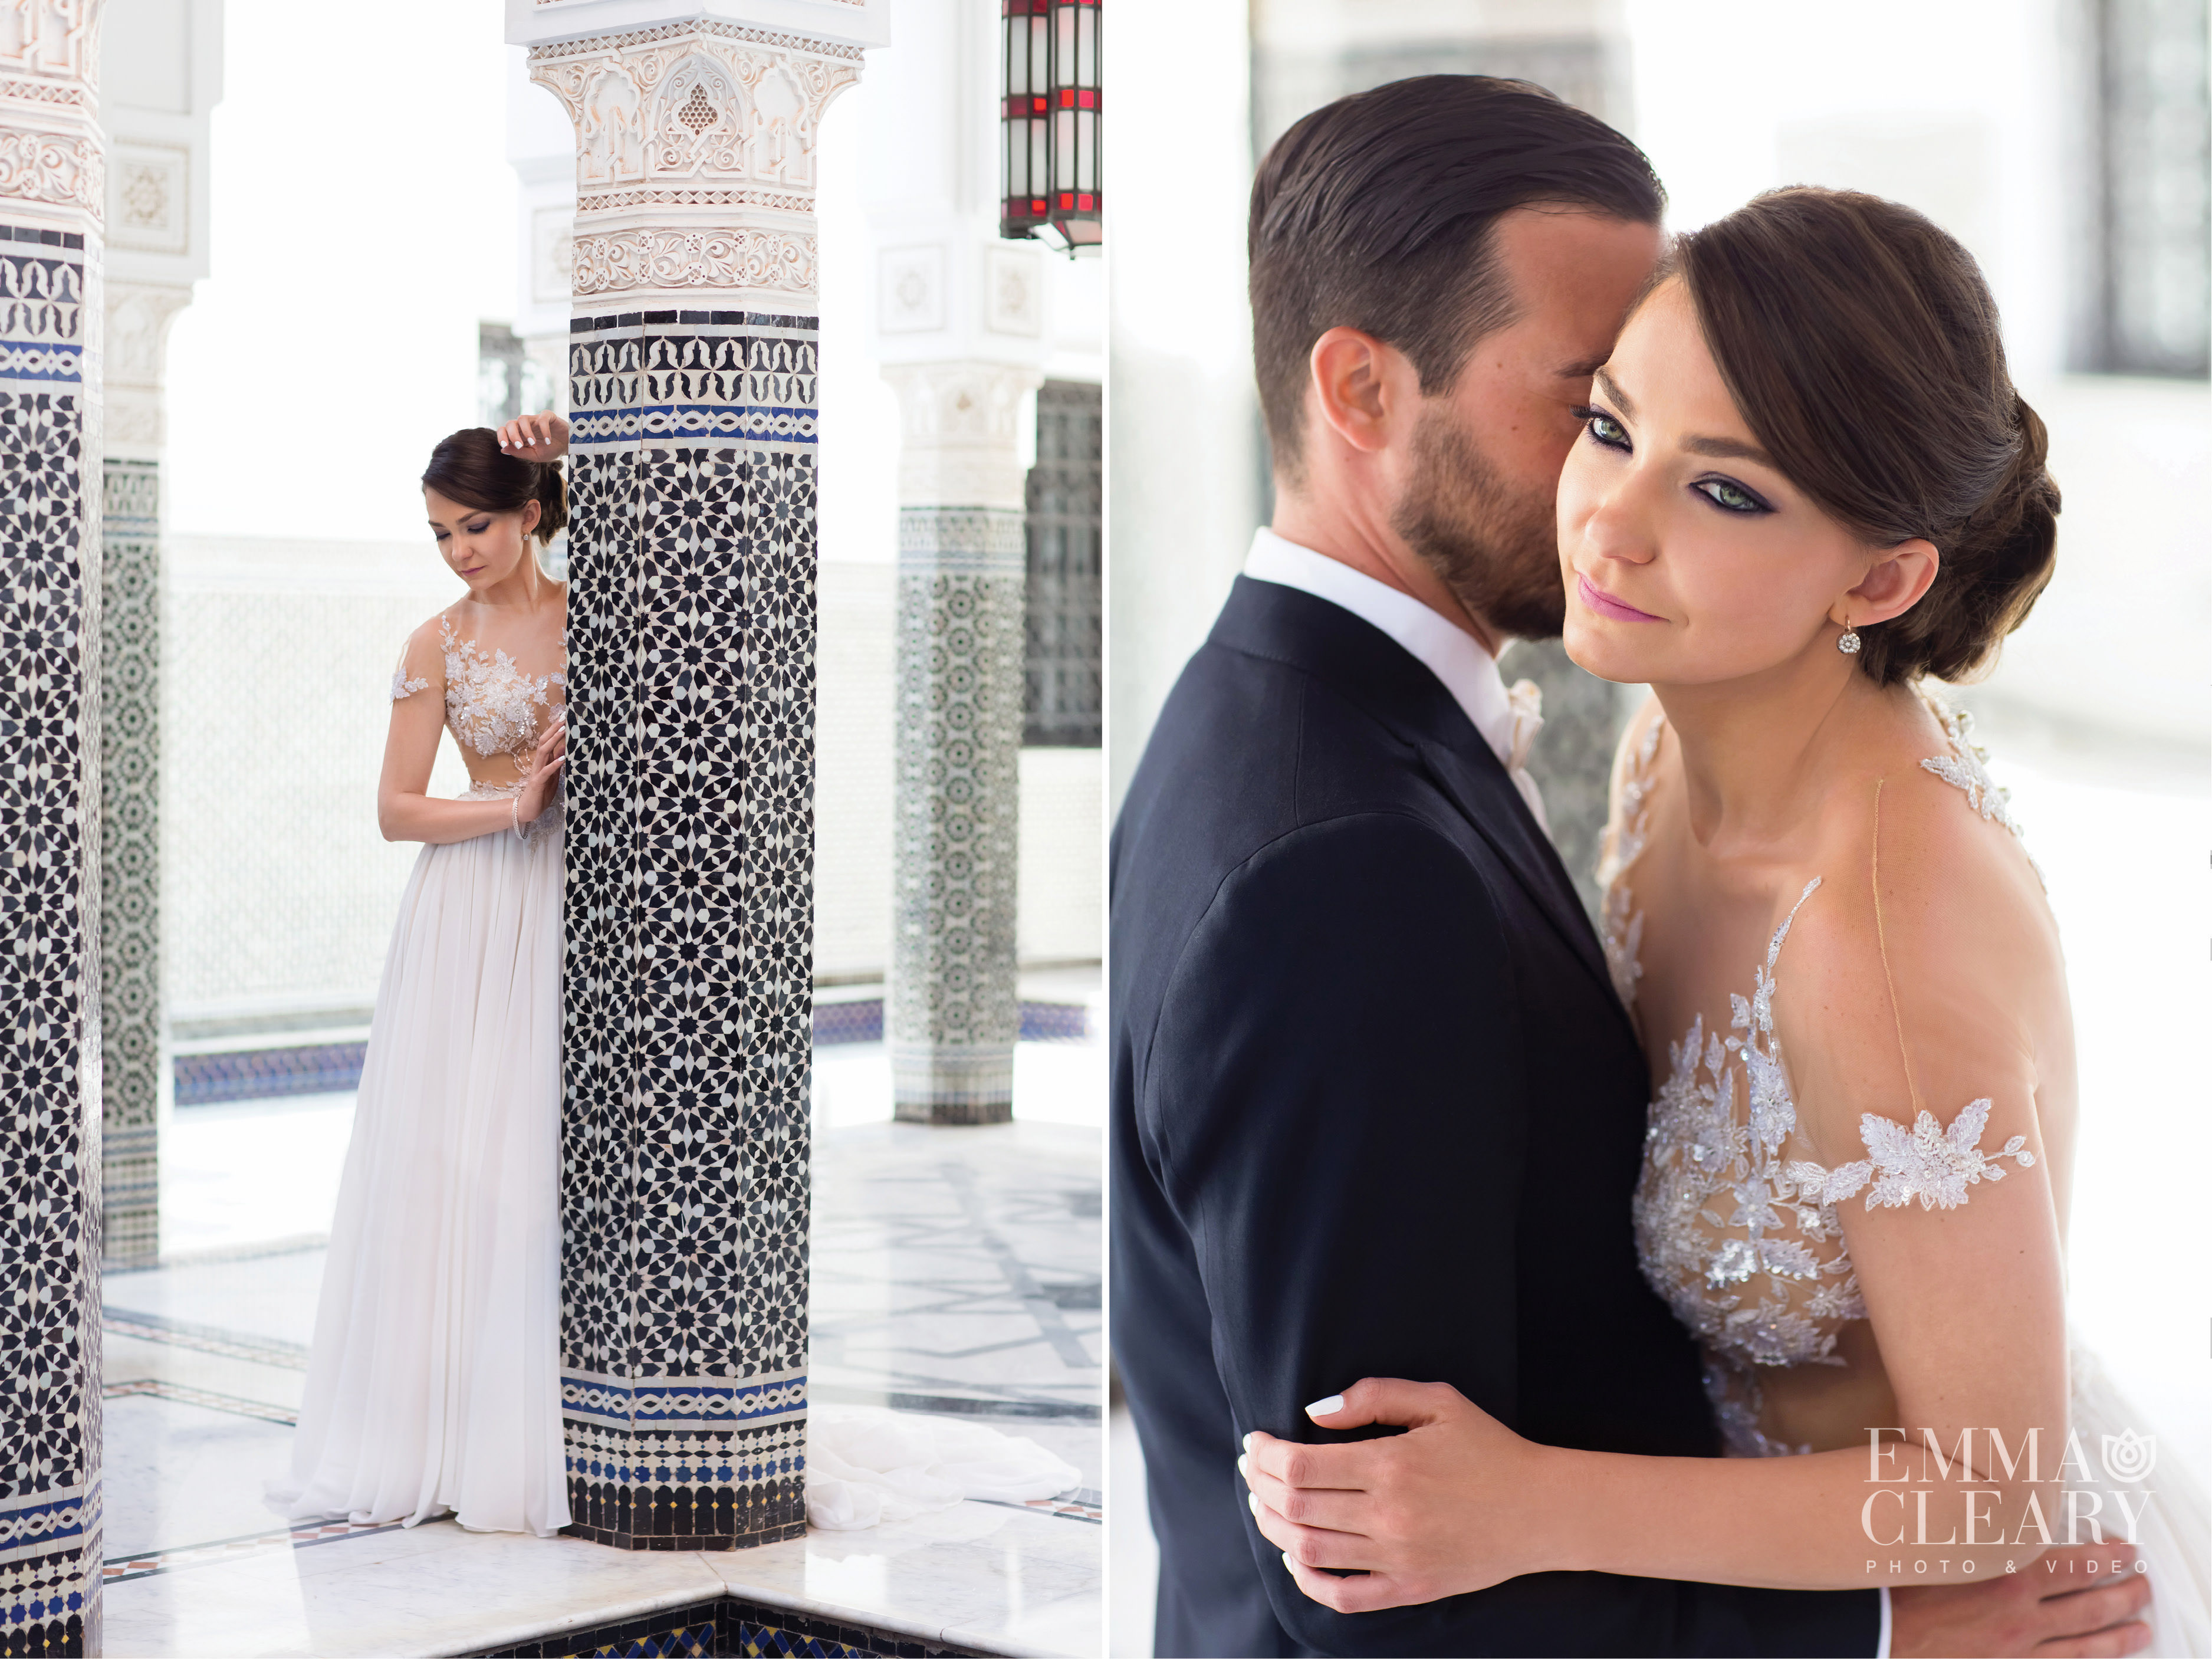 Emma_cleary_photography Destination Wedding Morrocco10